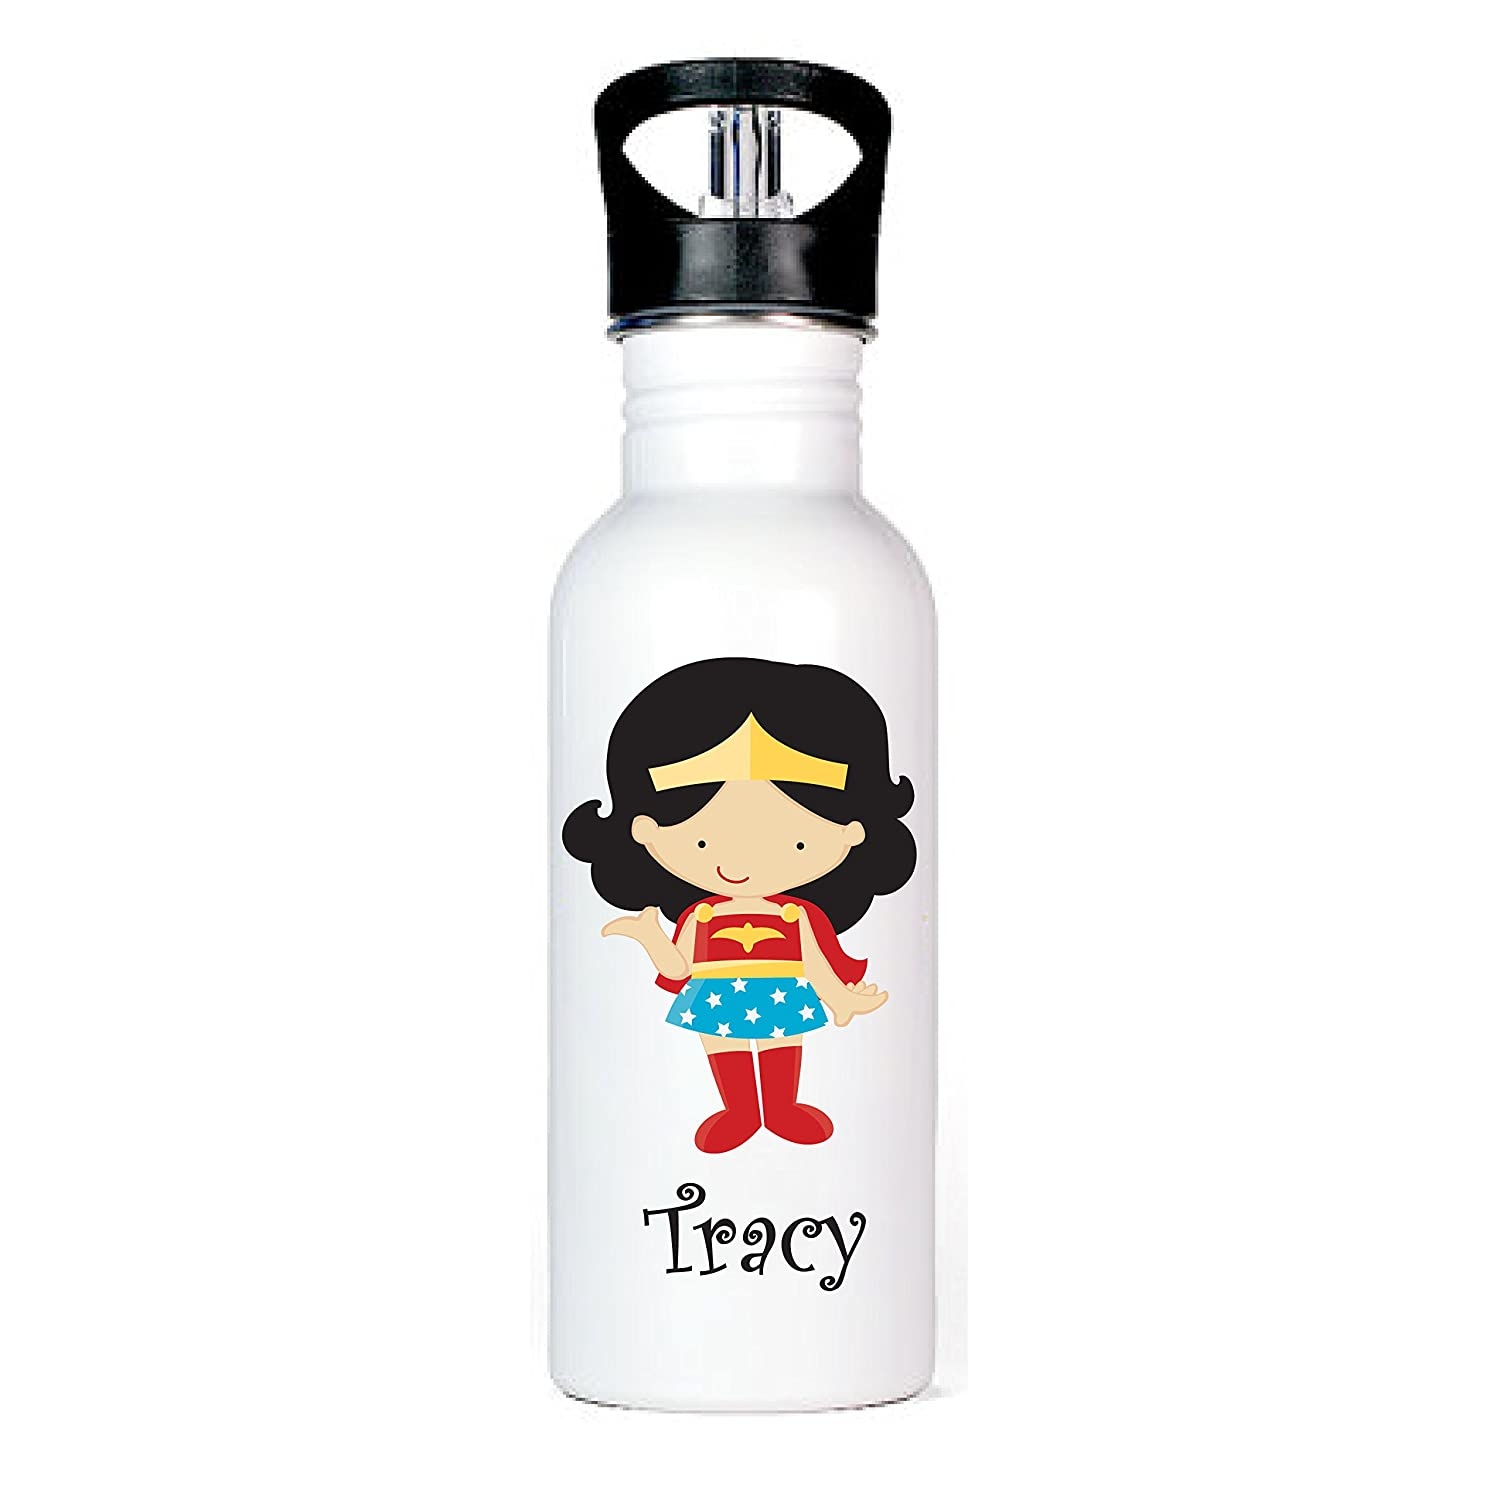 Supergirl Aluminum Water Bottle by Ooh La La Printables